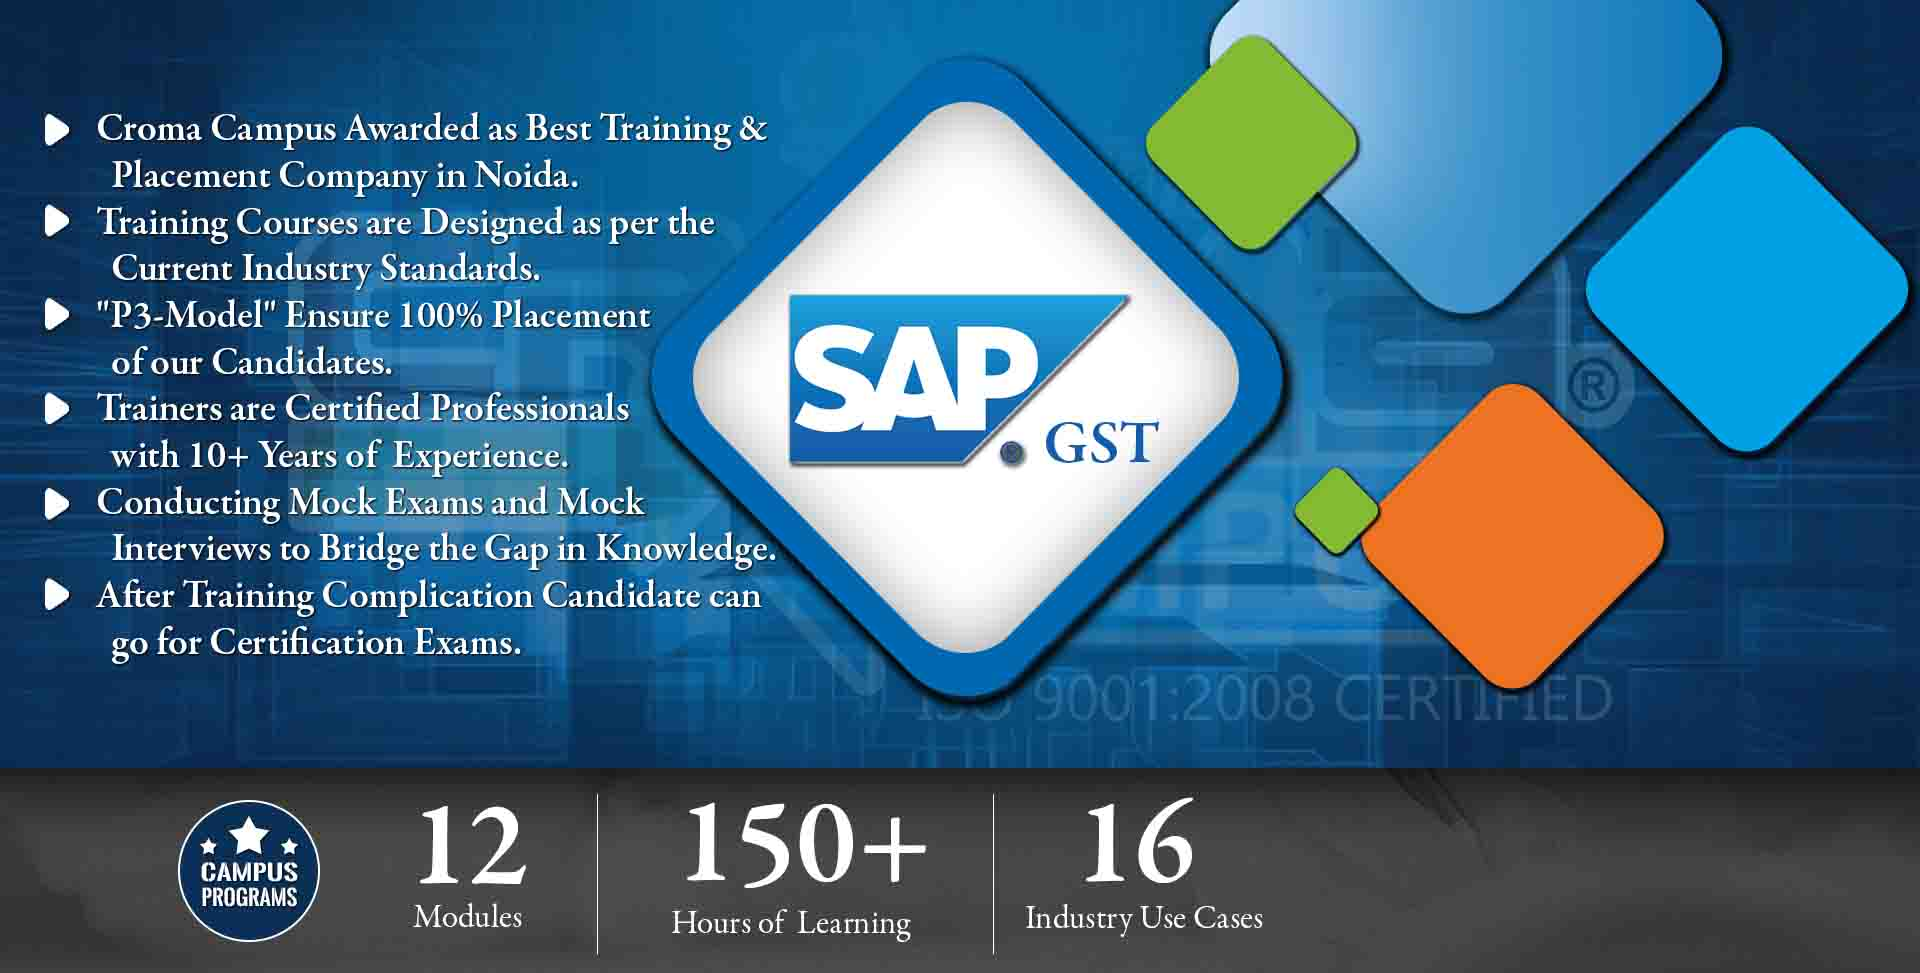 SAP GST Training in Gurgaon- Croma Campus